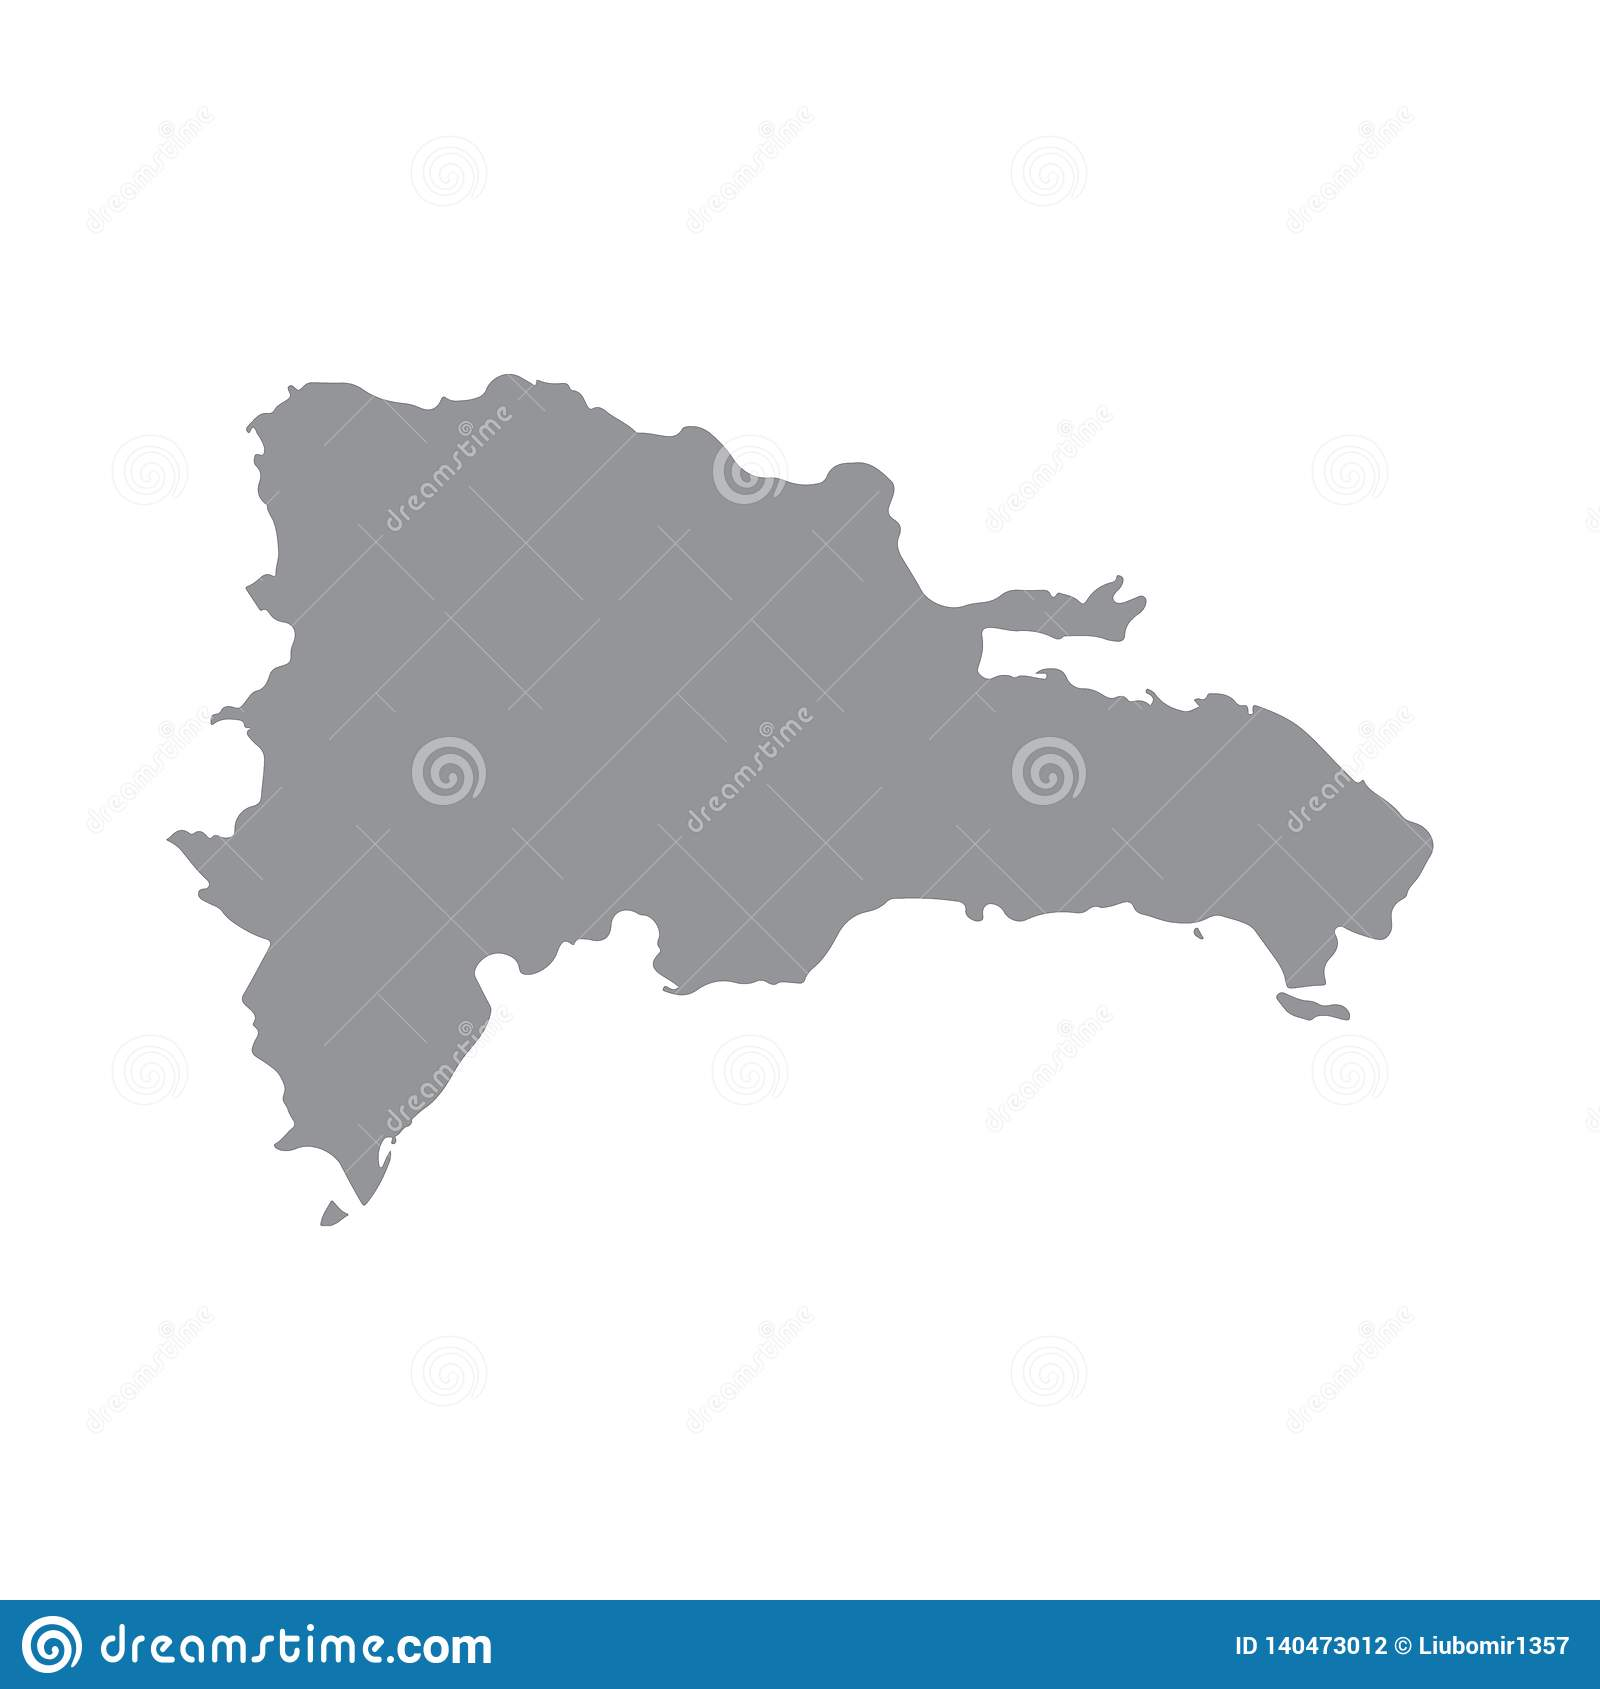 Dominican Republic map in gray on a white background